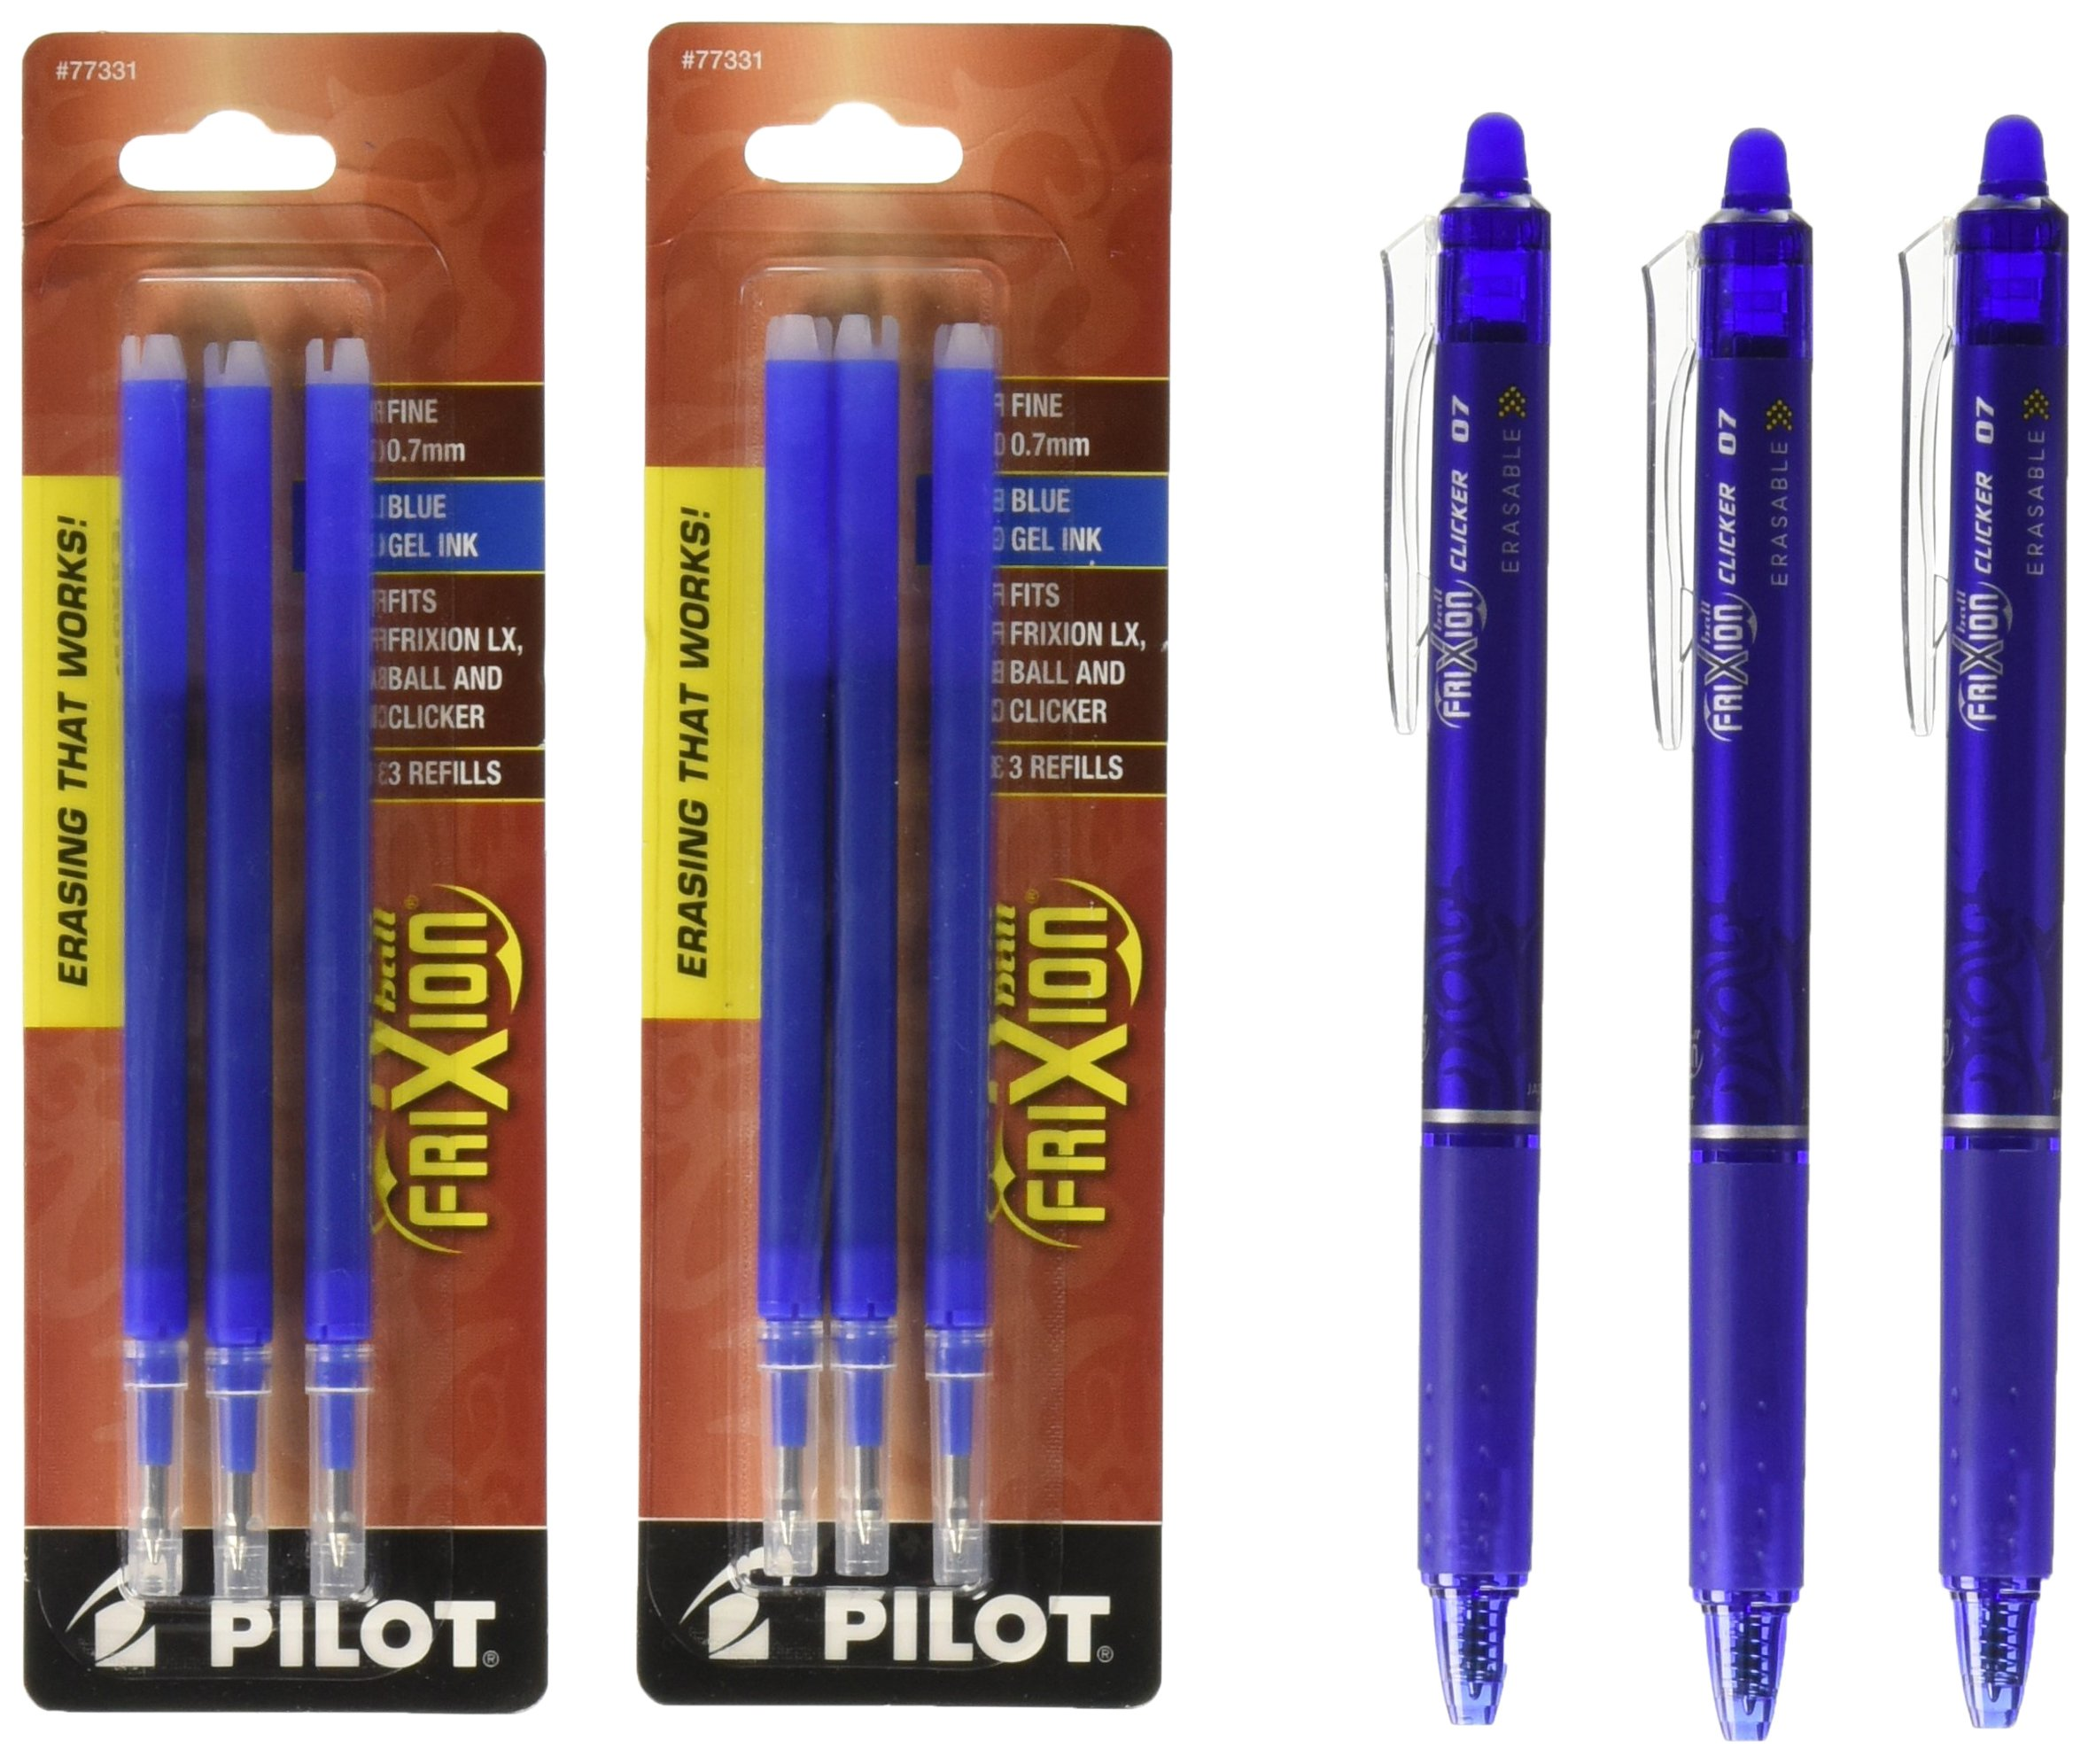 Pack of 3 with Bonus 2 Packs of Refills Pilot FriXion Clicker Retractable Gel Ink Pens Red Ink Eraseable Fine Point 0.7mm